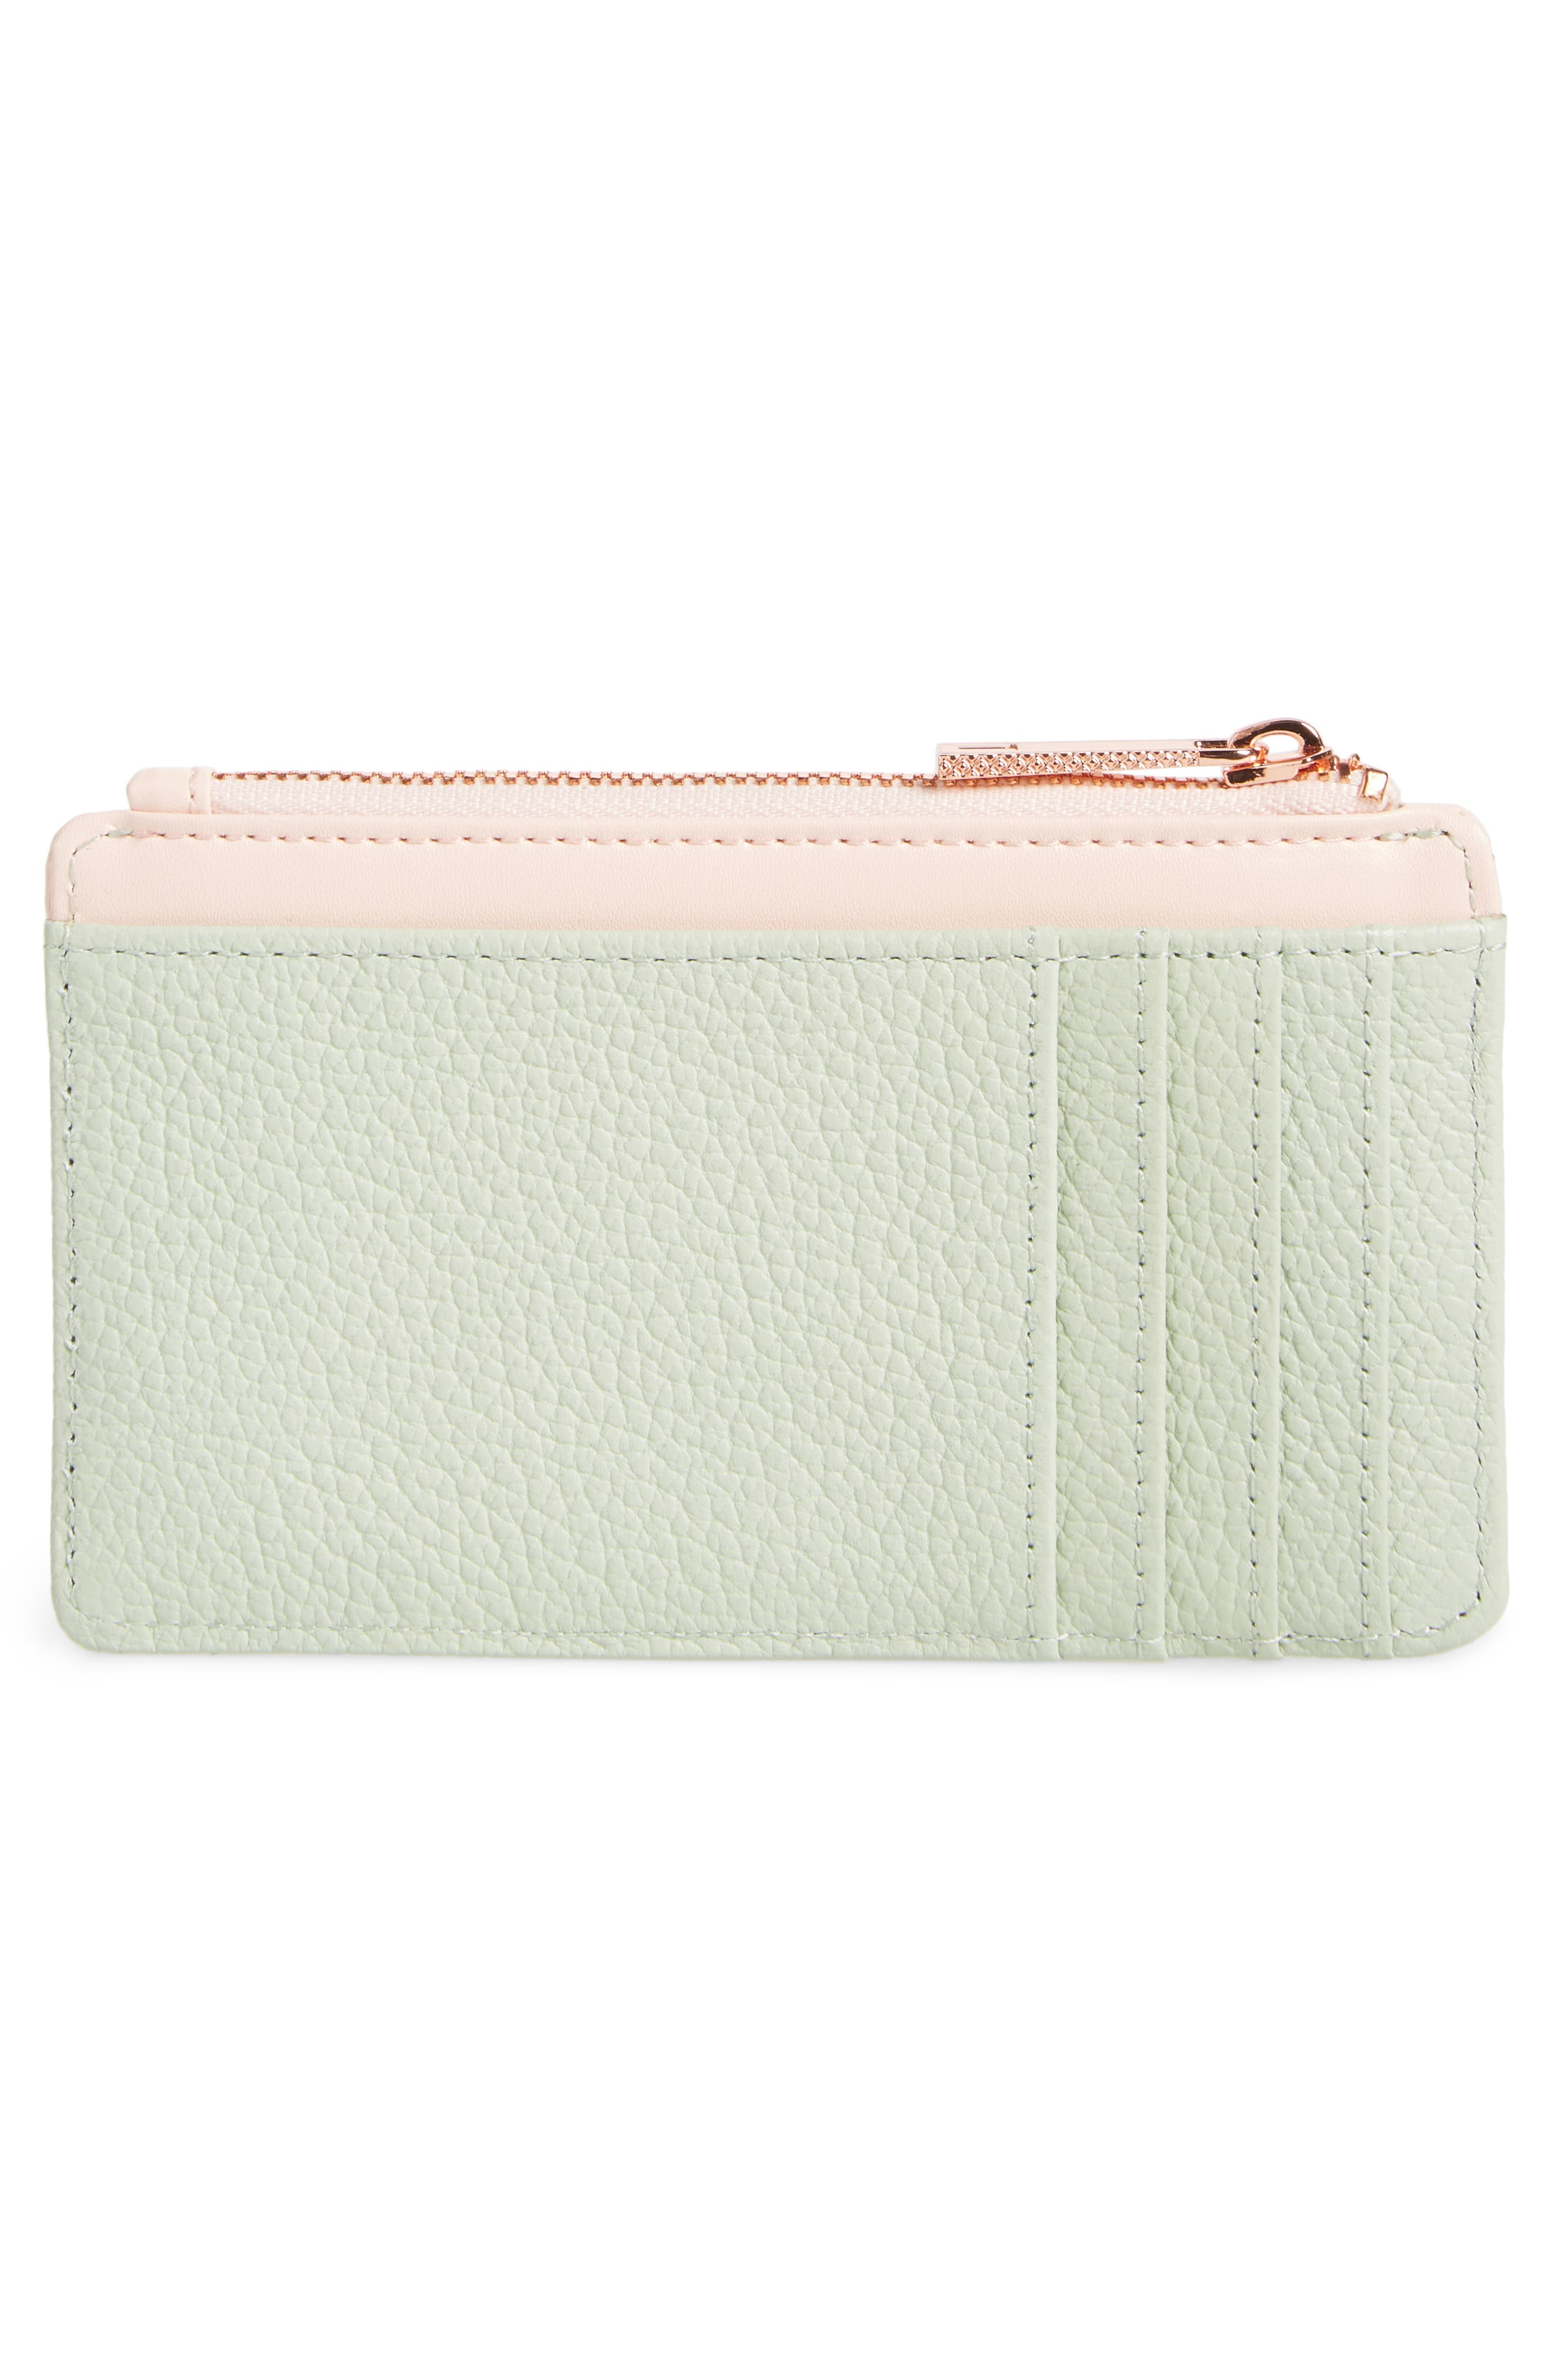 Alica Top Zip Leather Card Case,                             Alternate thumbnail 4, color,                             Olive